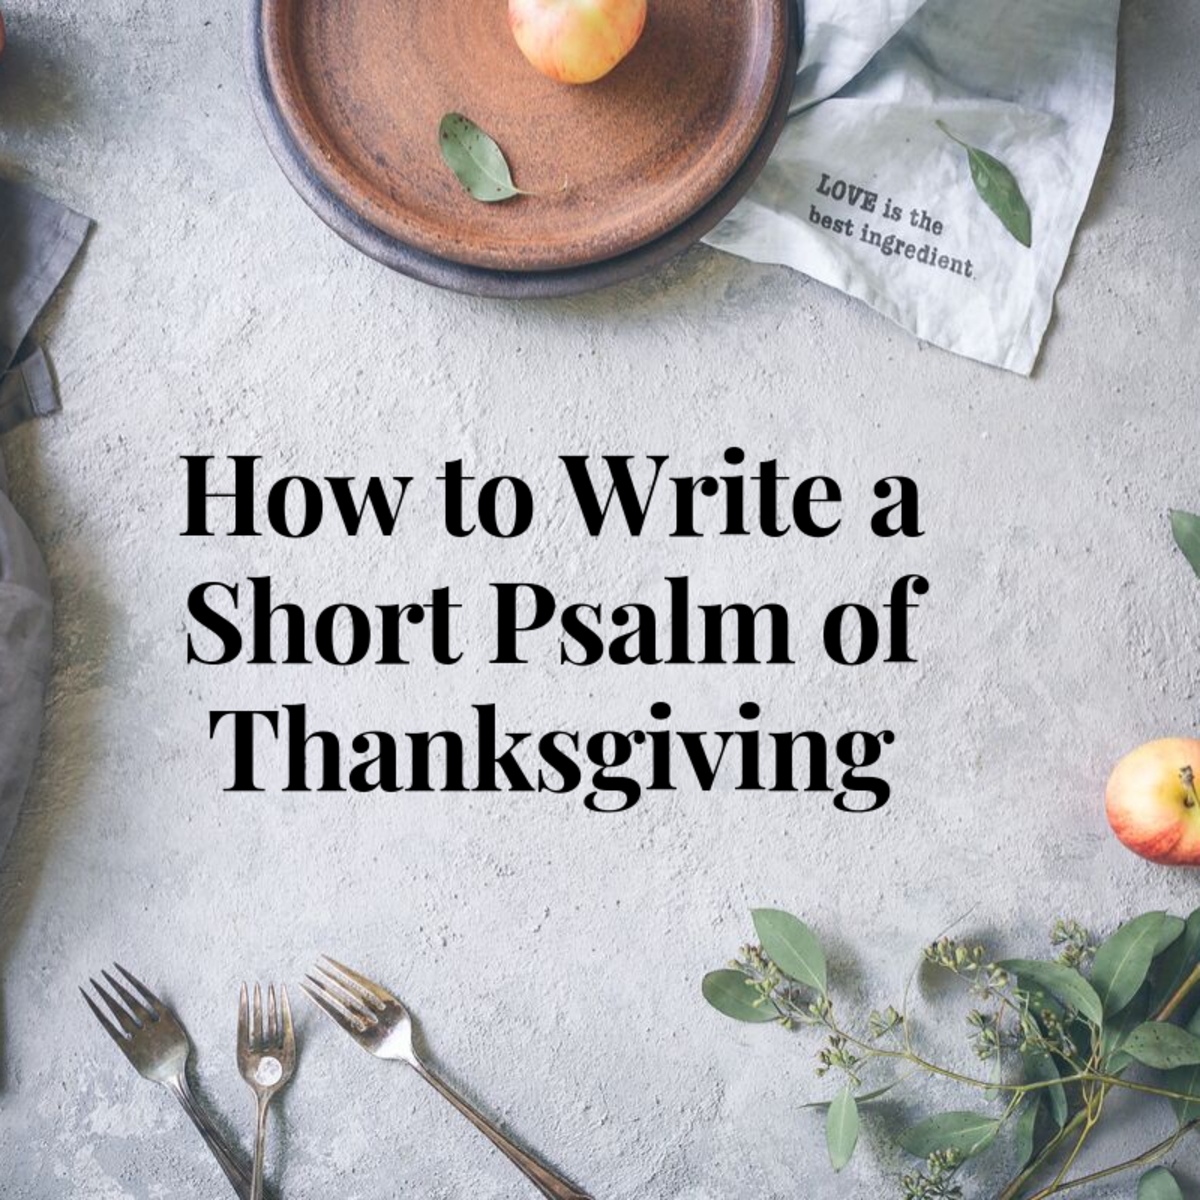 How to Write a Short, Personal Psalm of Thanksgiving